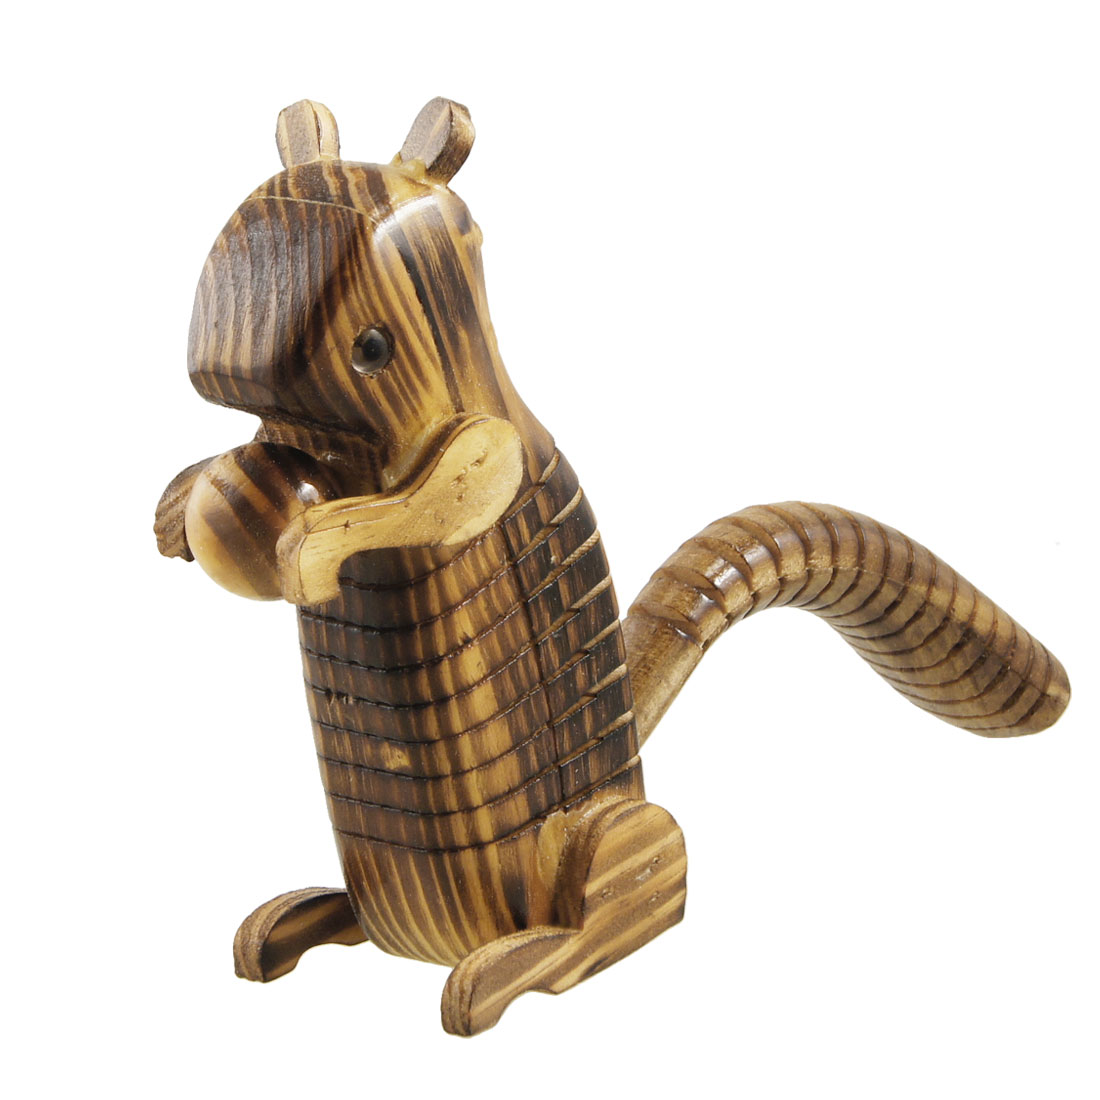 Wood Simulated Collectible Squirrel Play Toy for Children